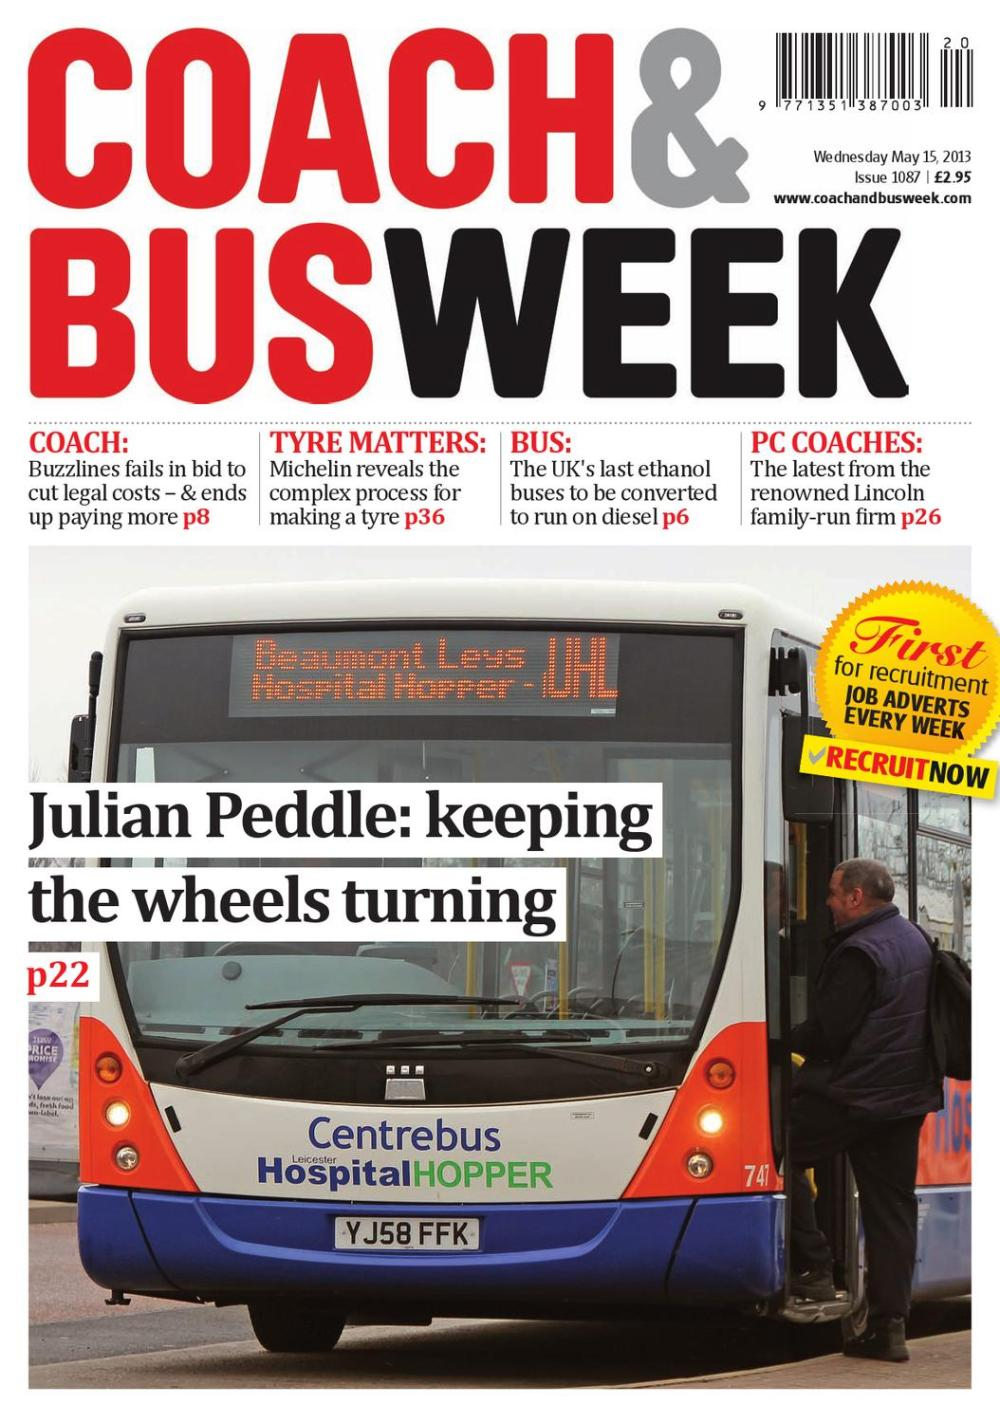 medium resolution of coach bus week issue 1087 by coach and bus week group travel world issuu